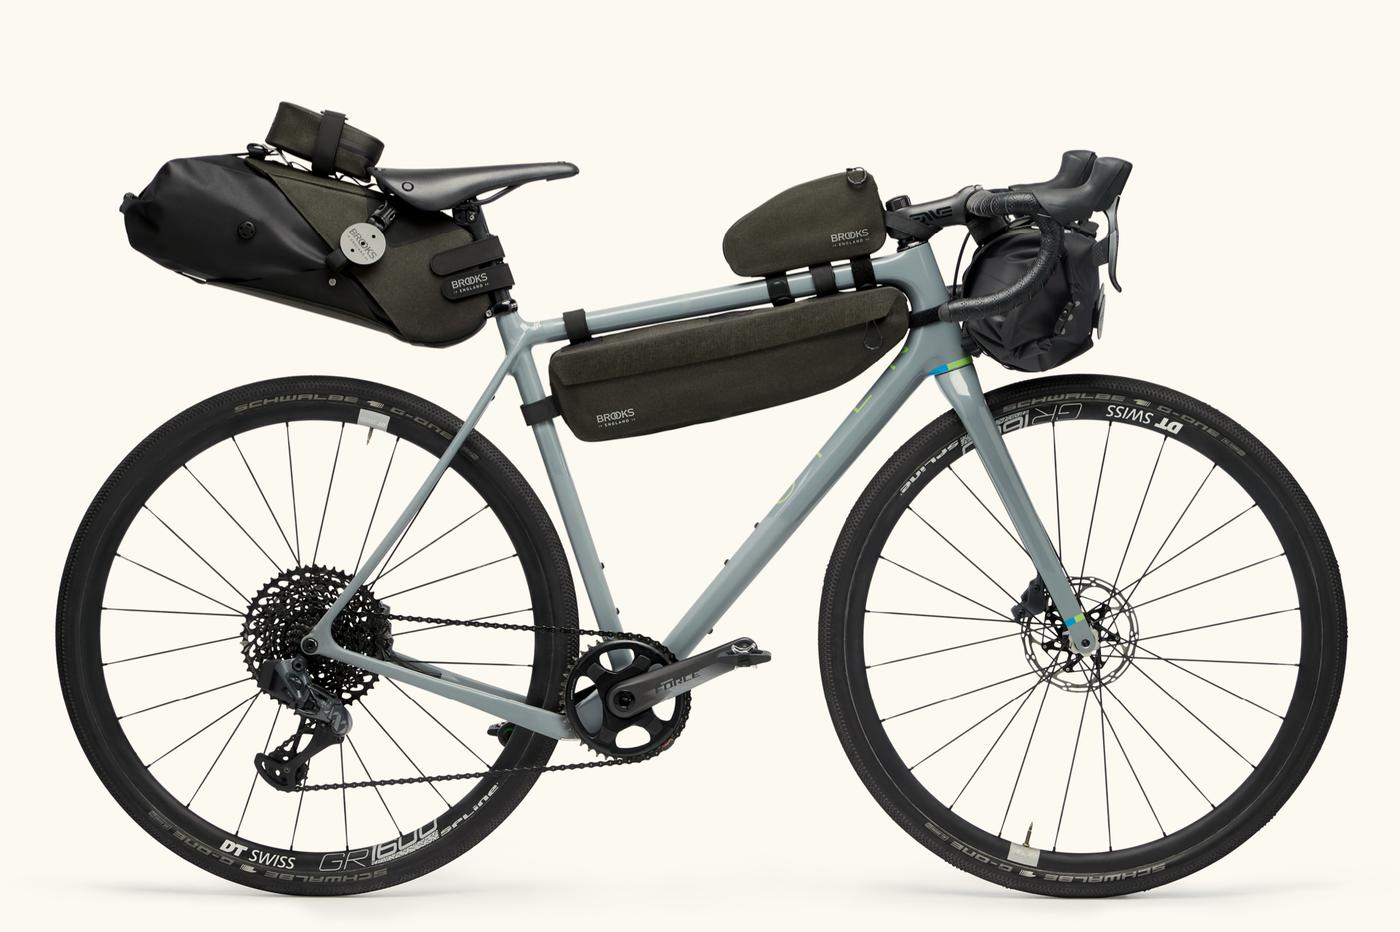 Brooks England Announces Their Bicycle Touring Bags: Scape